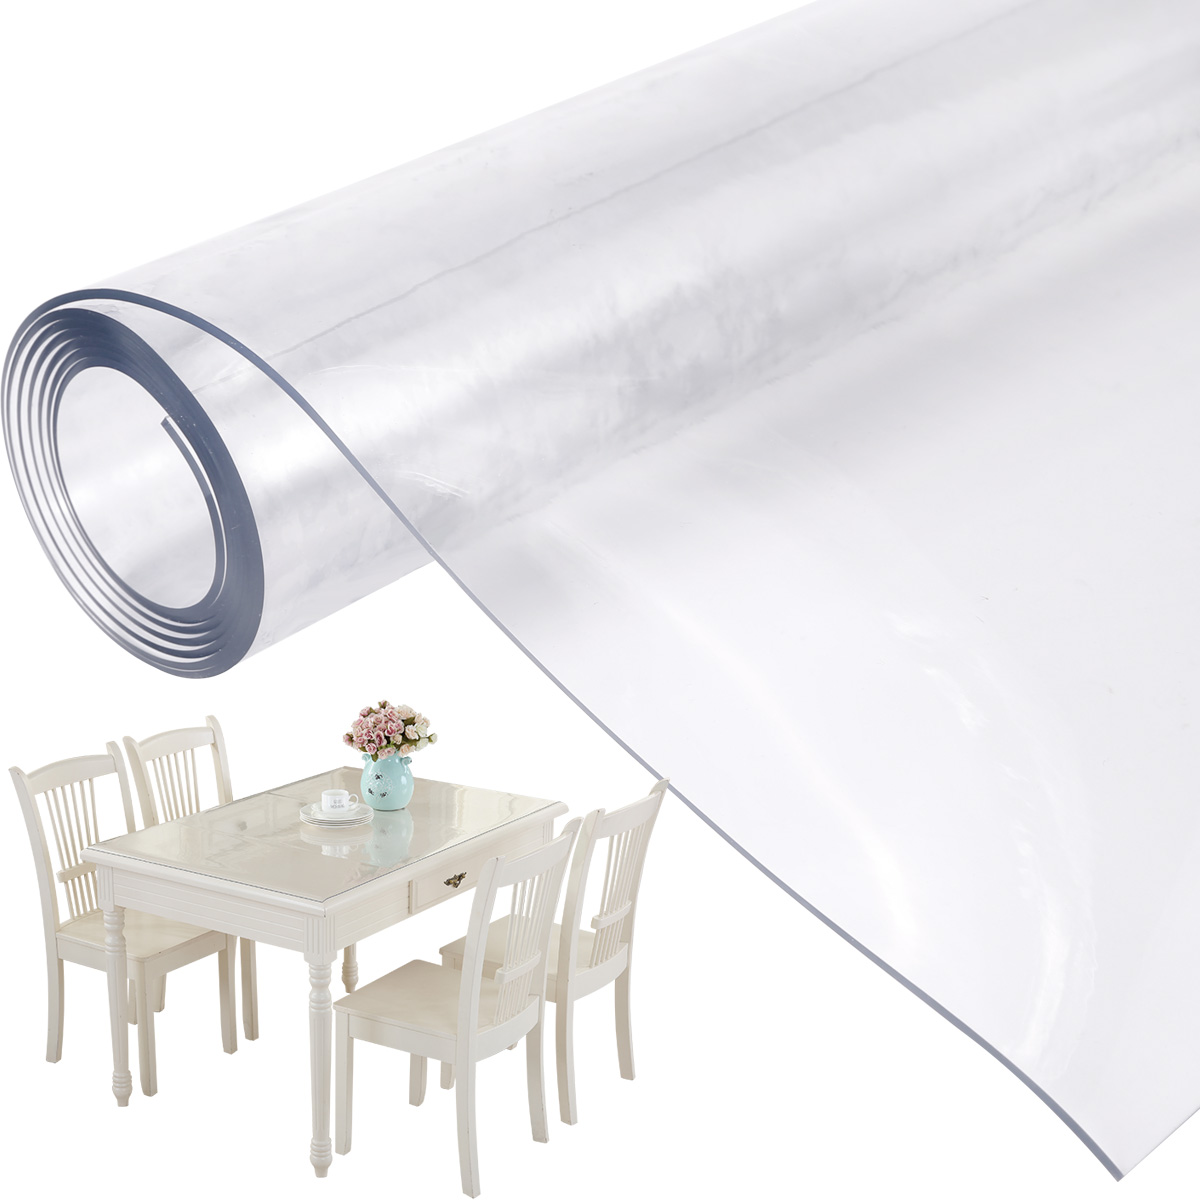 2mm Pvc Table Protector Table Cover Protector Transparent Width 160cm 90cm Ebay